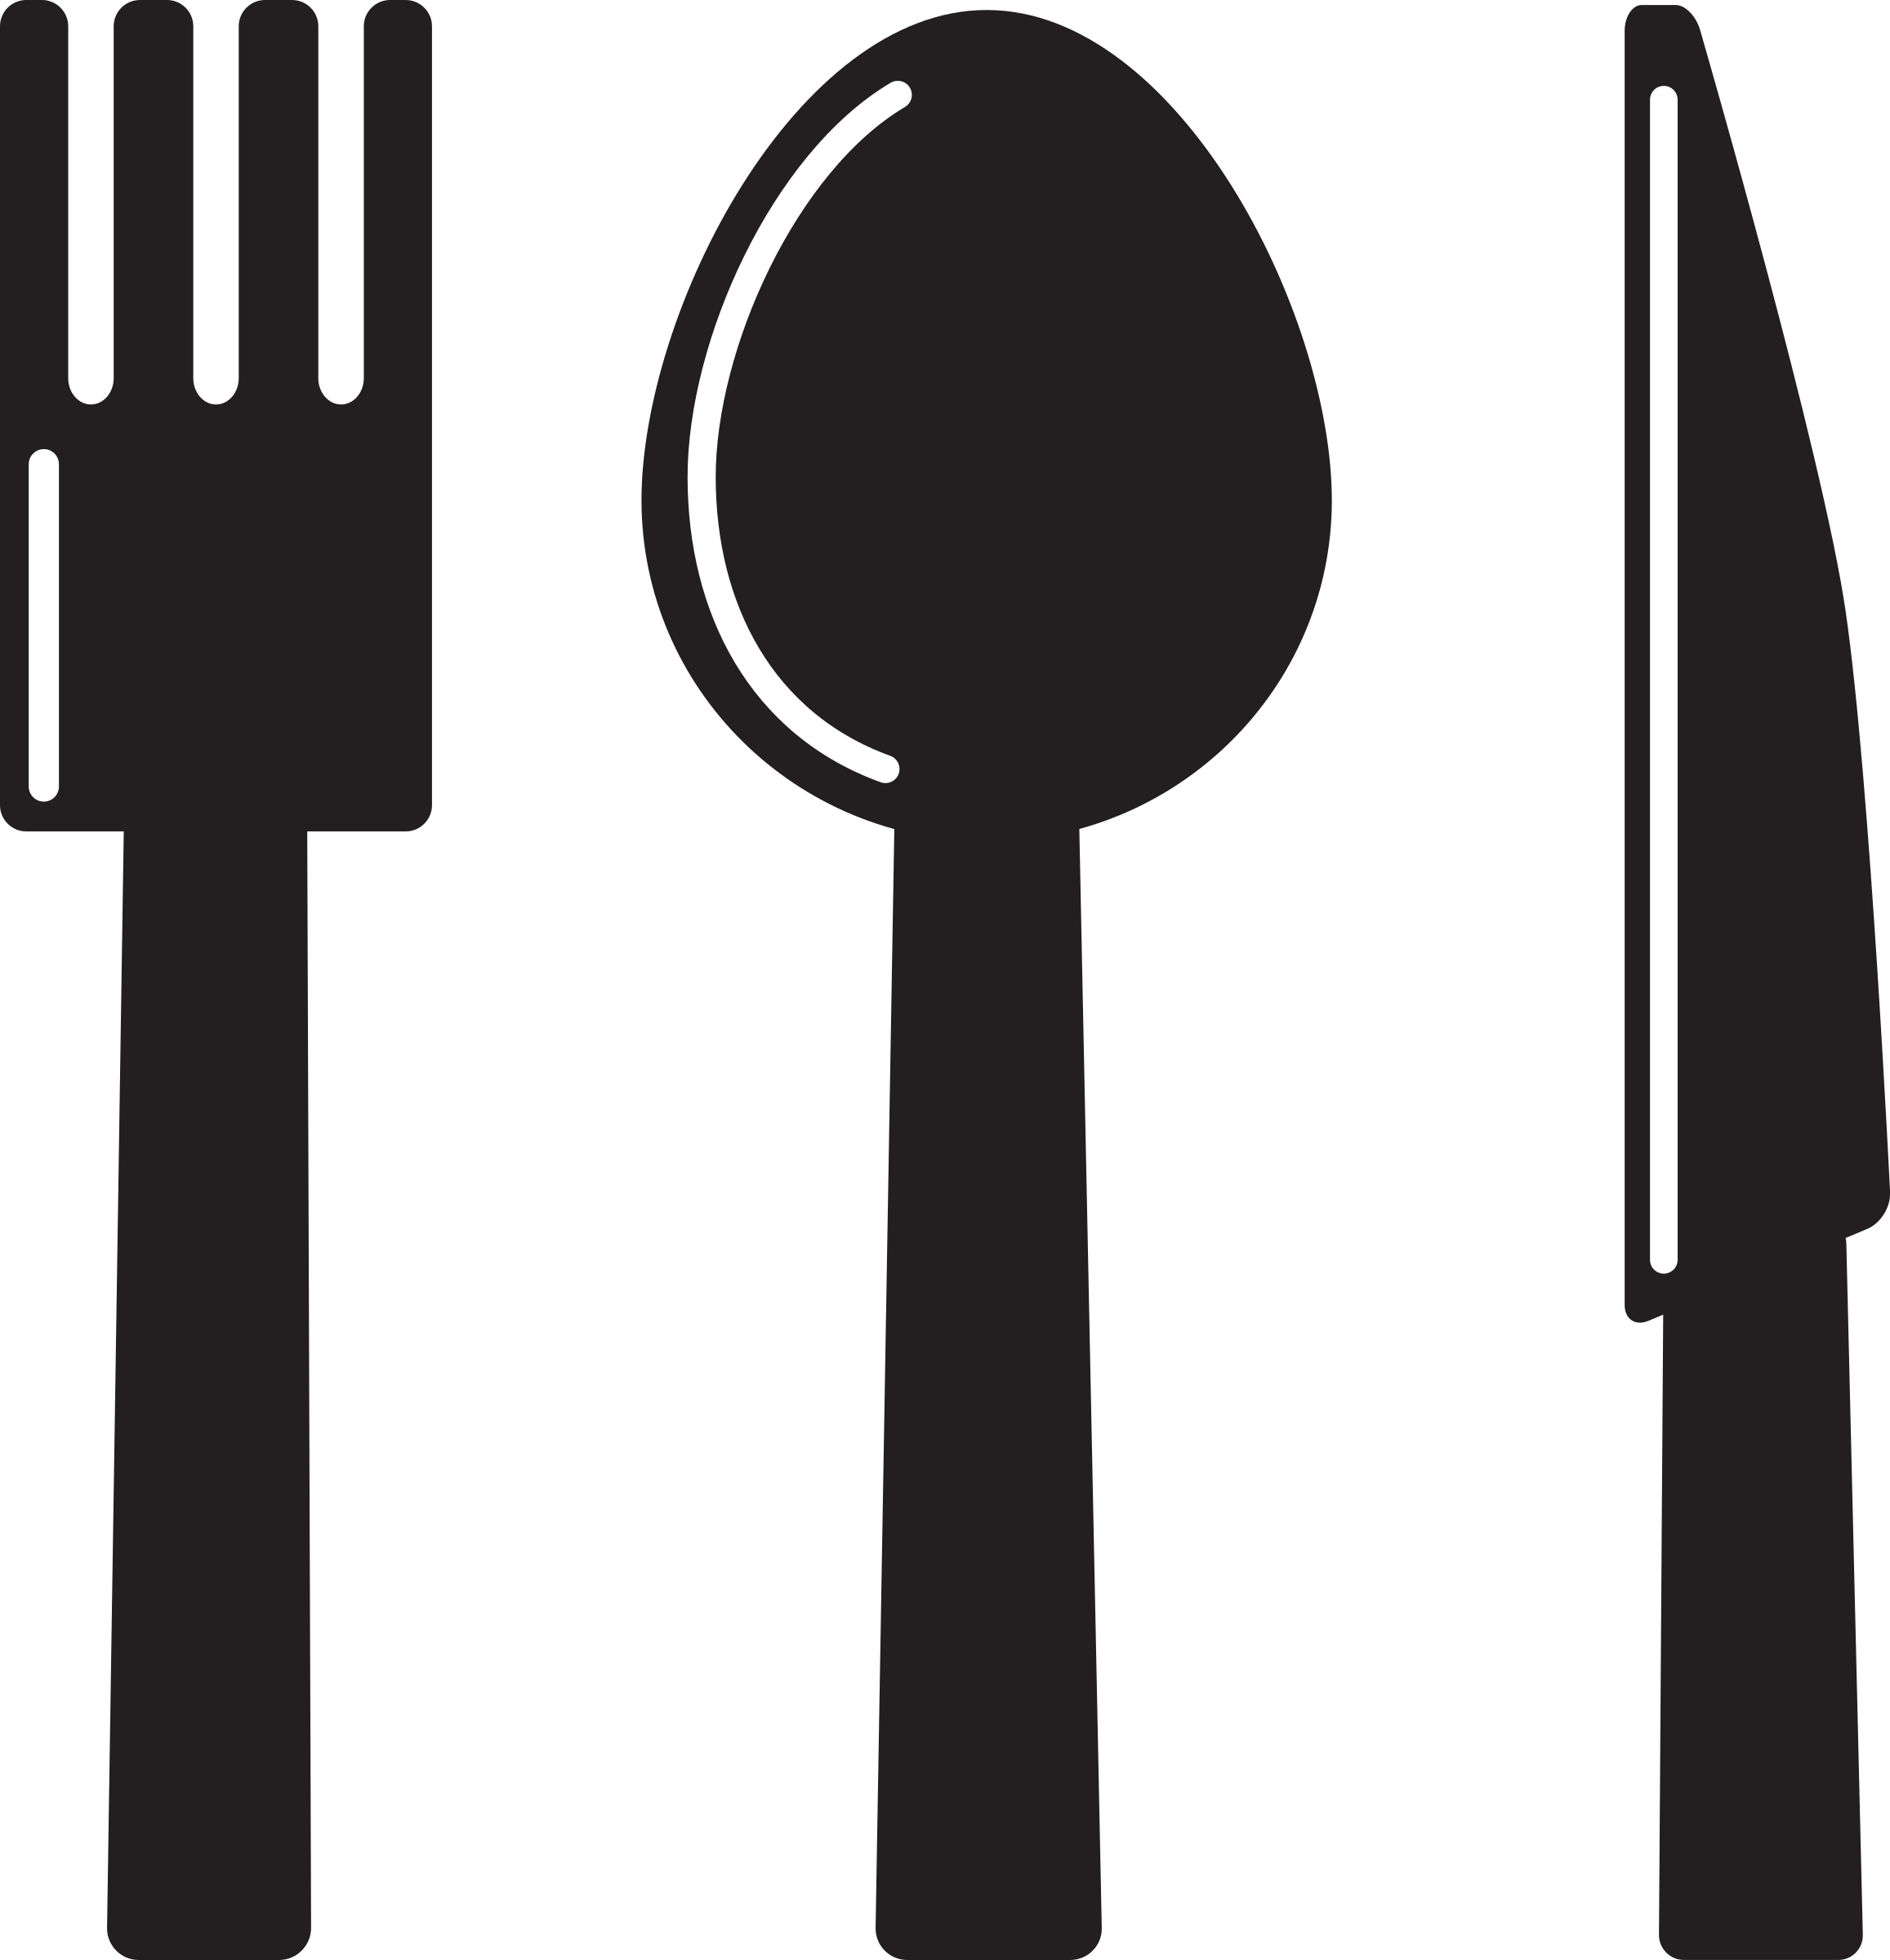 Knife and fork icon png. Kitchen spoon icons free